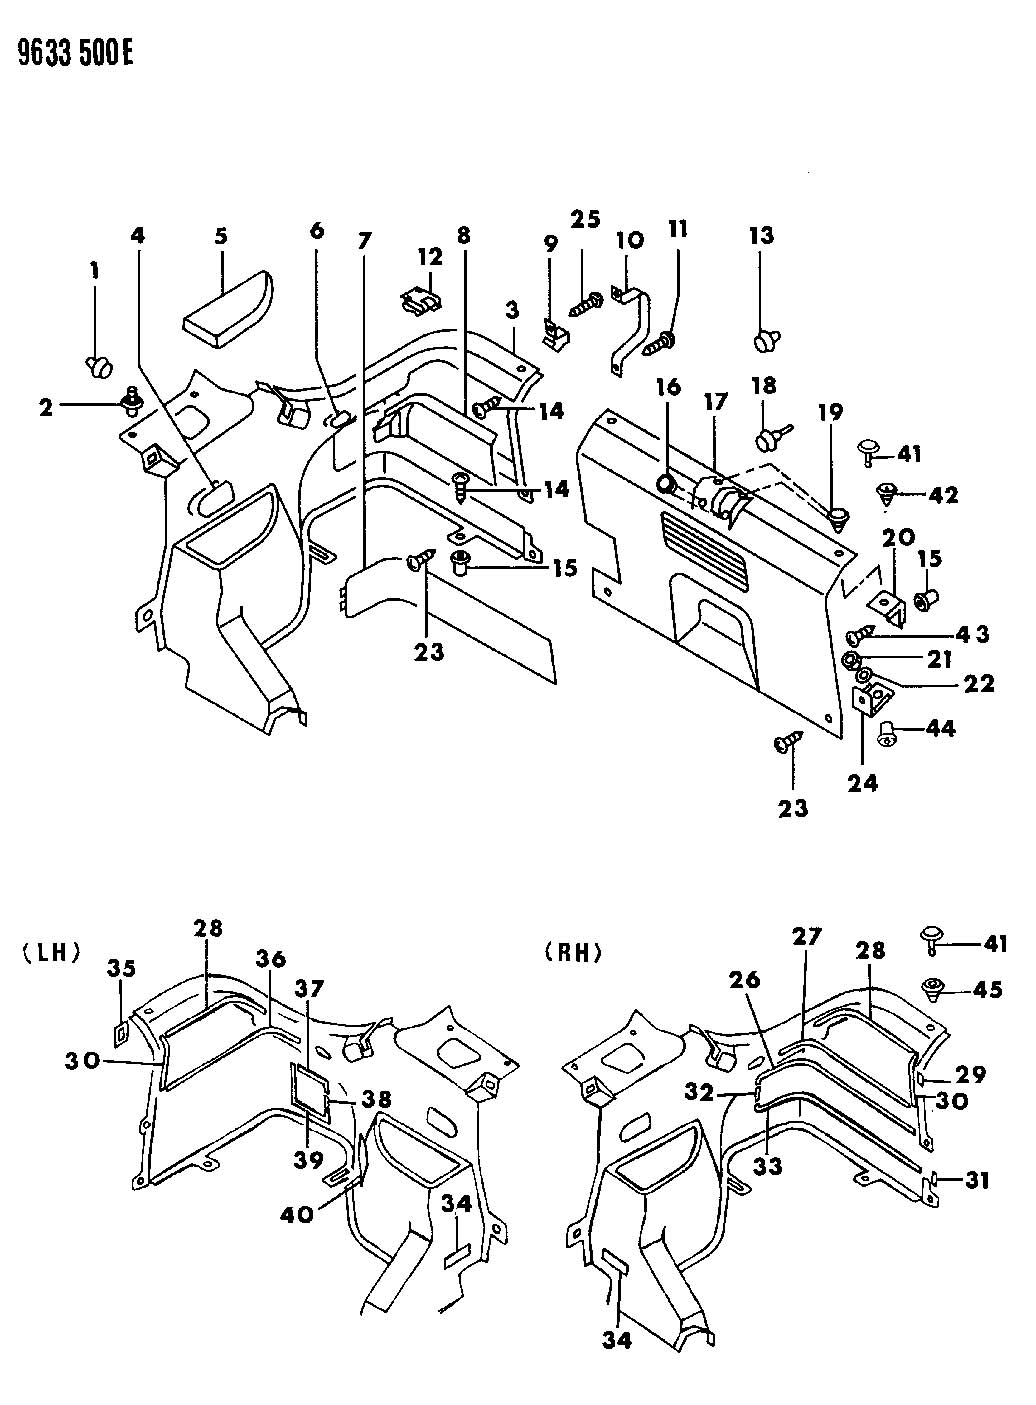 1991 Dodge Dynasty Engine Diagram 1991 Dodge Dynasty Fuel